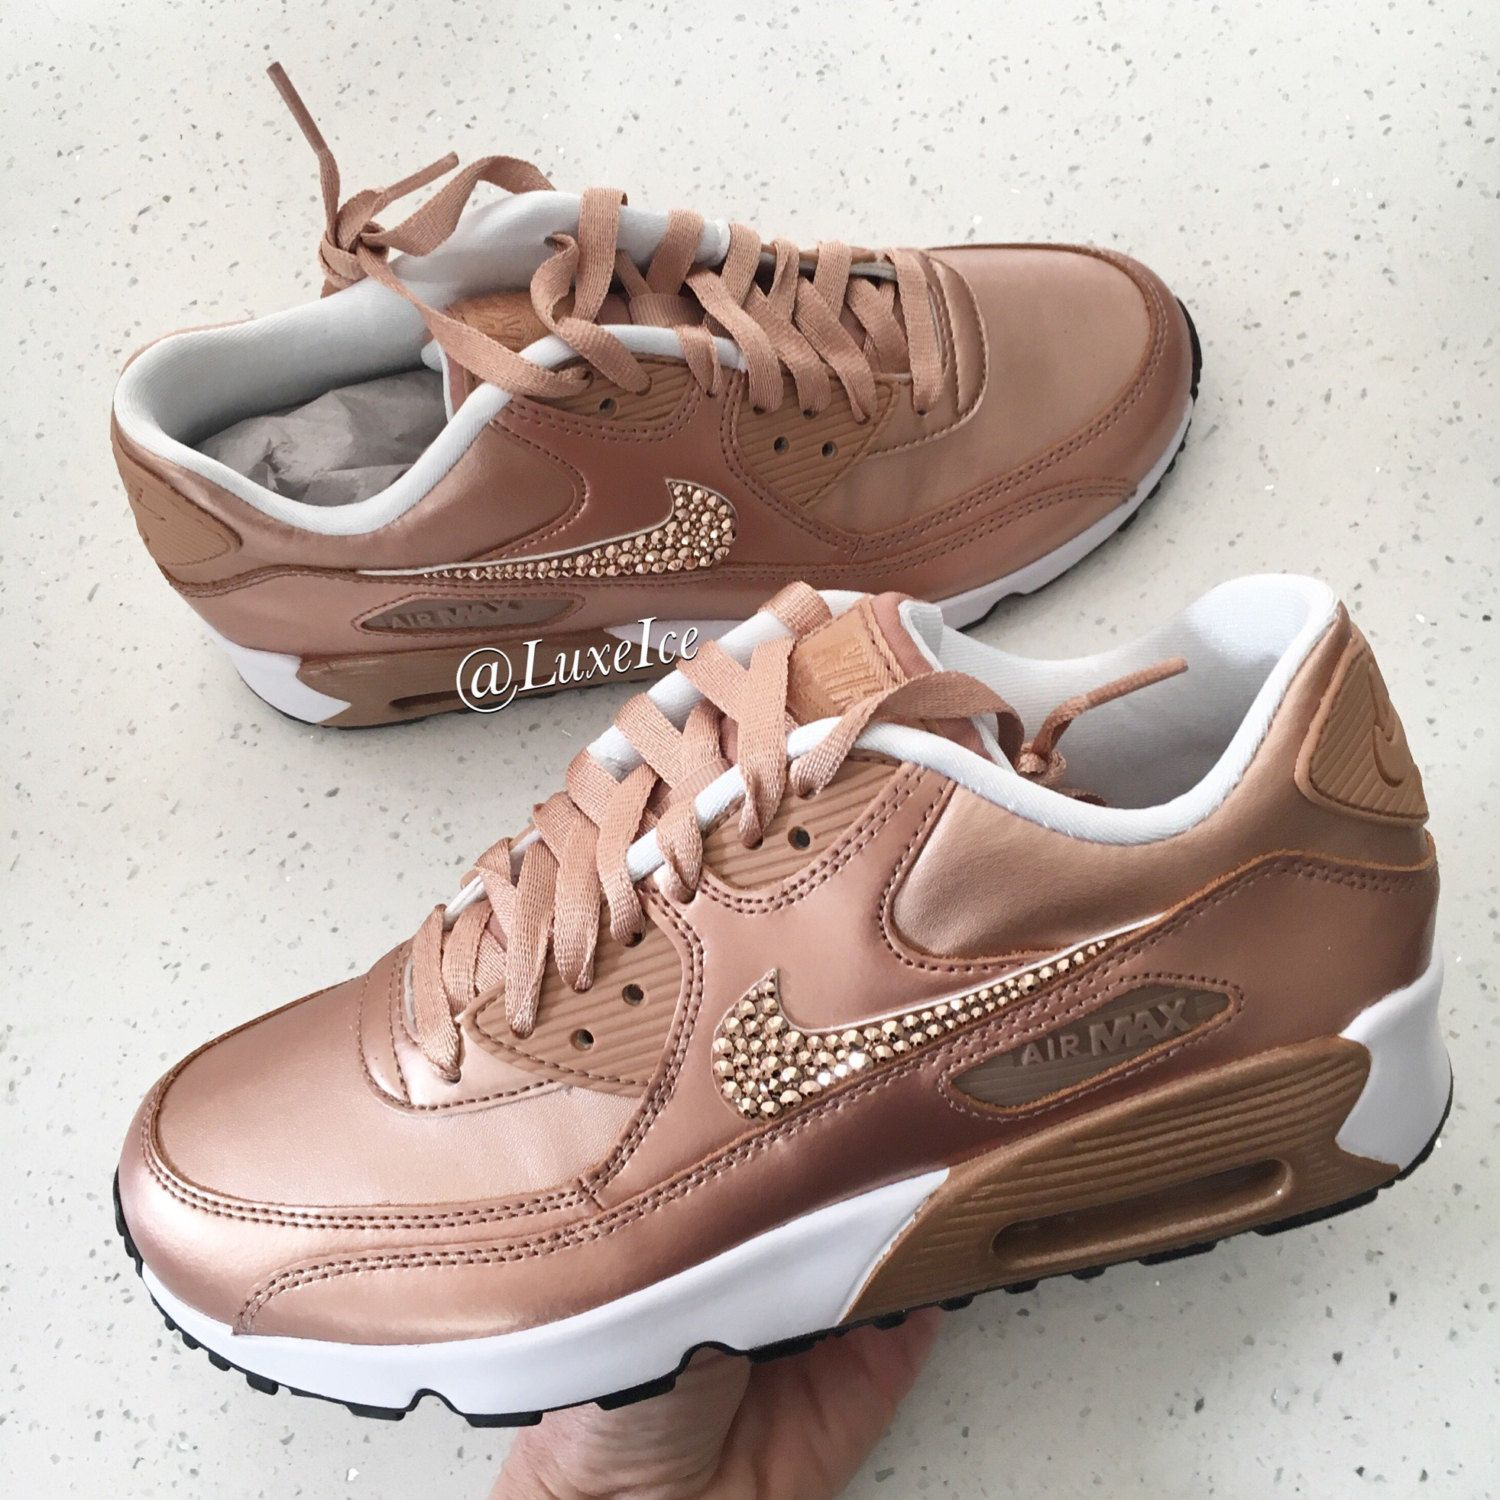 Nike Air Max 90 SE Leather Shoes Made with SWAROVSKI® Crystals - White/ Metallic Rose Gold